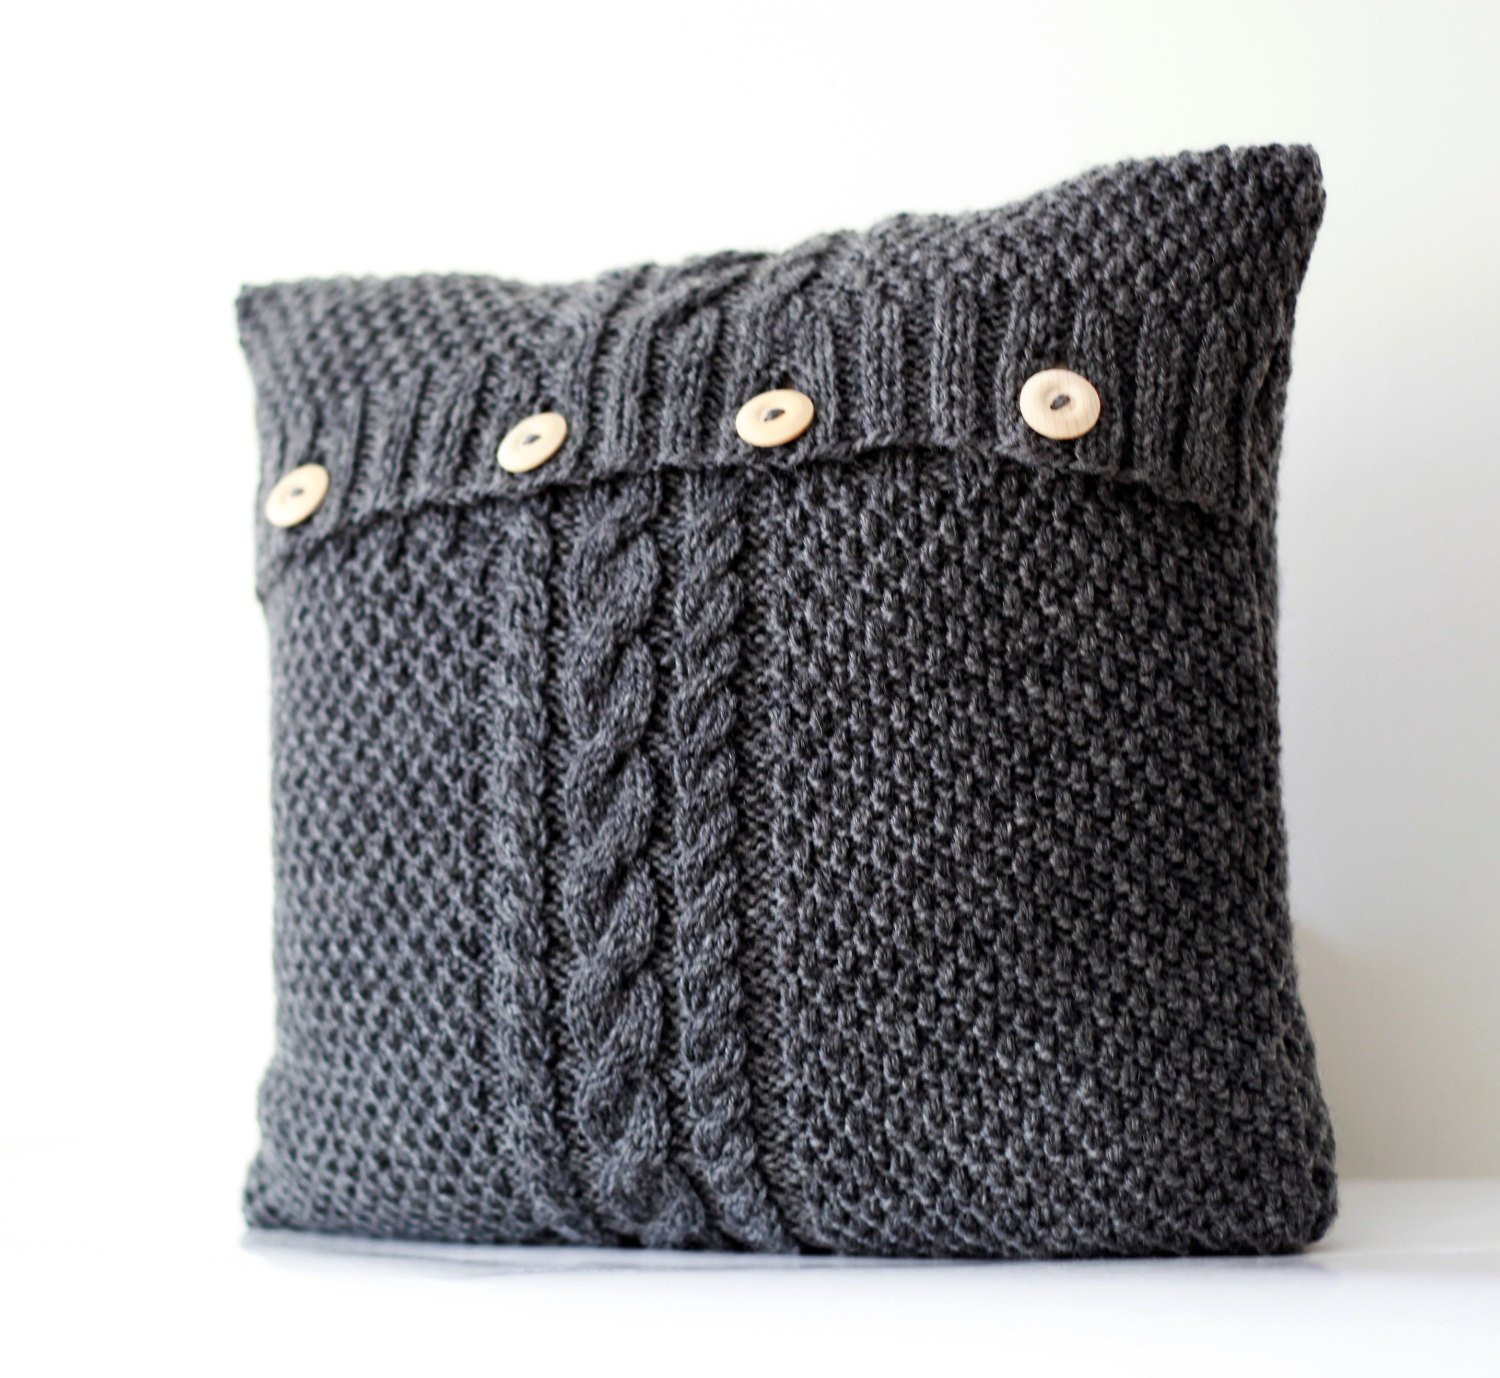 Knit Pillow Inspirational Hand Knitted Gray Pillow Cover Cable Hand Knit Decorative Of Charming 46 Pics Knit Pillow